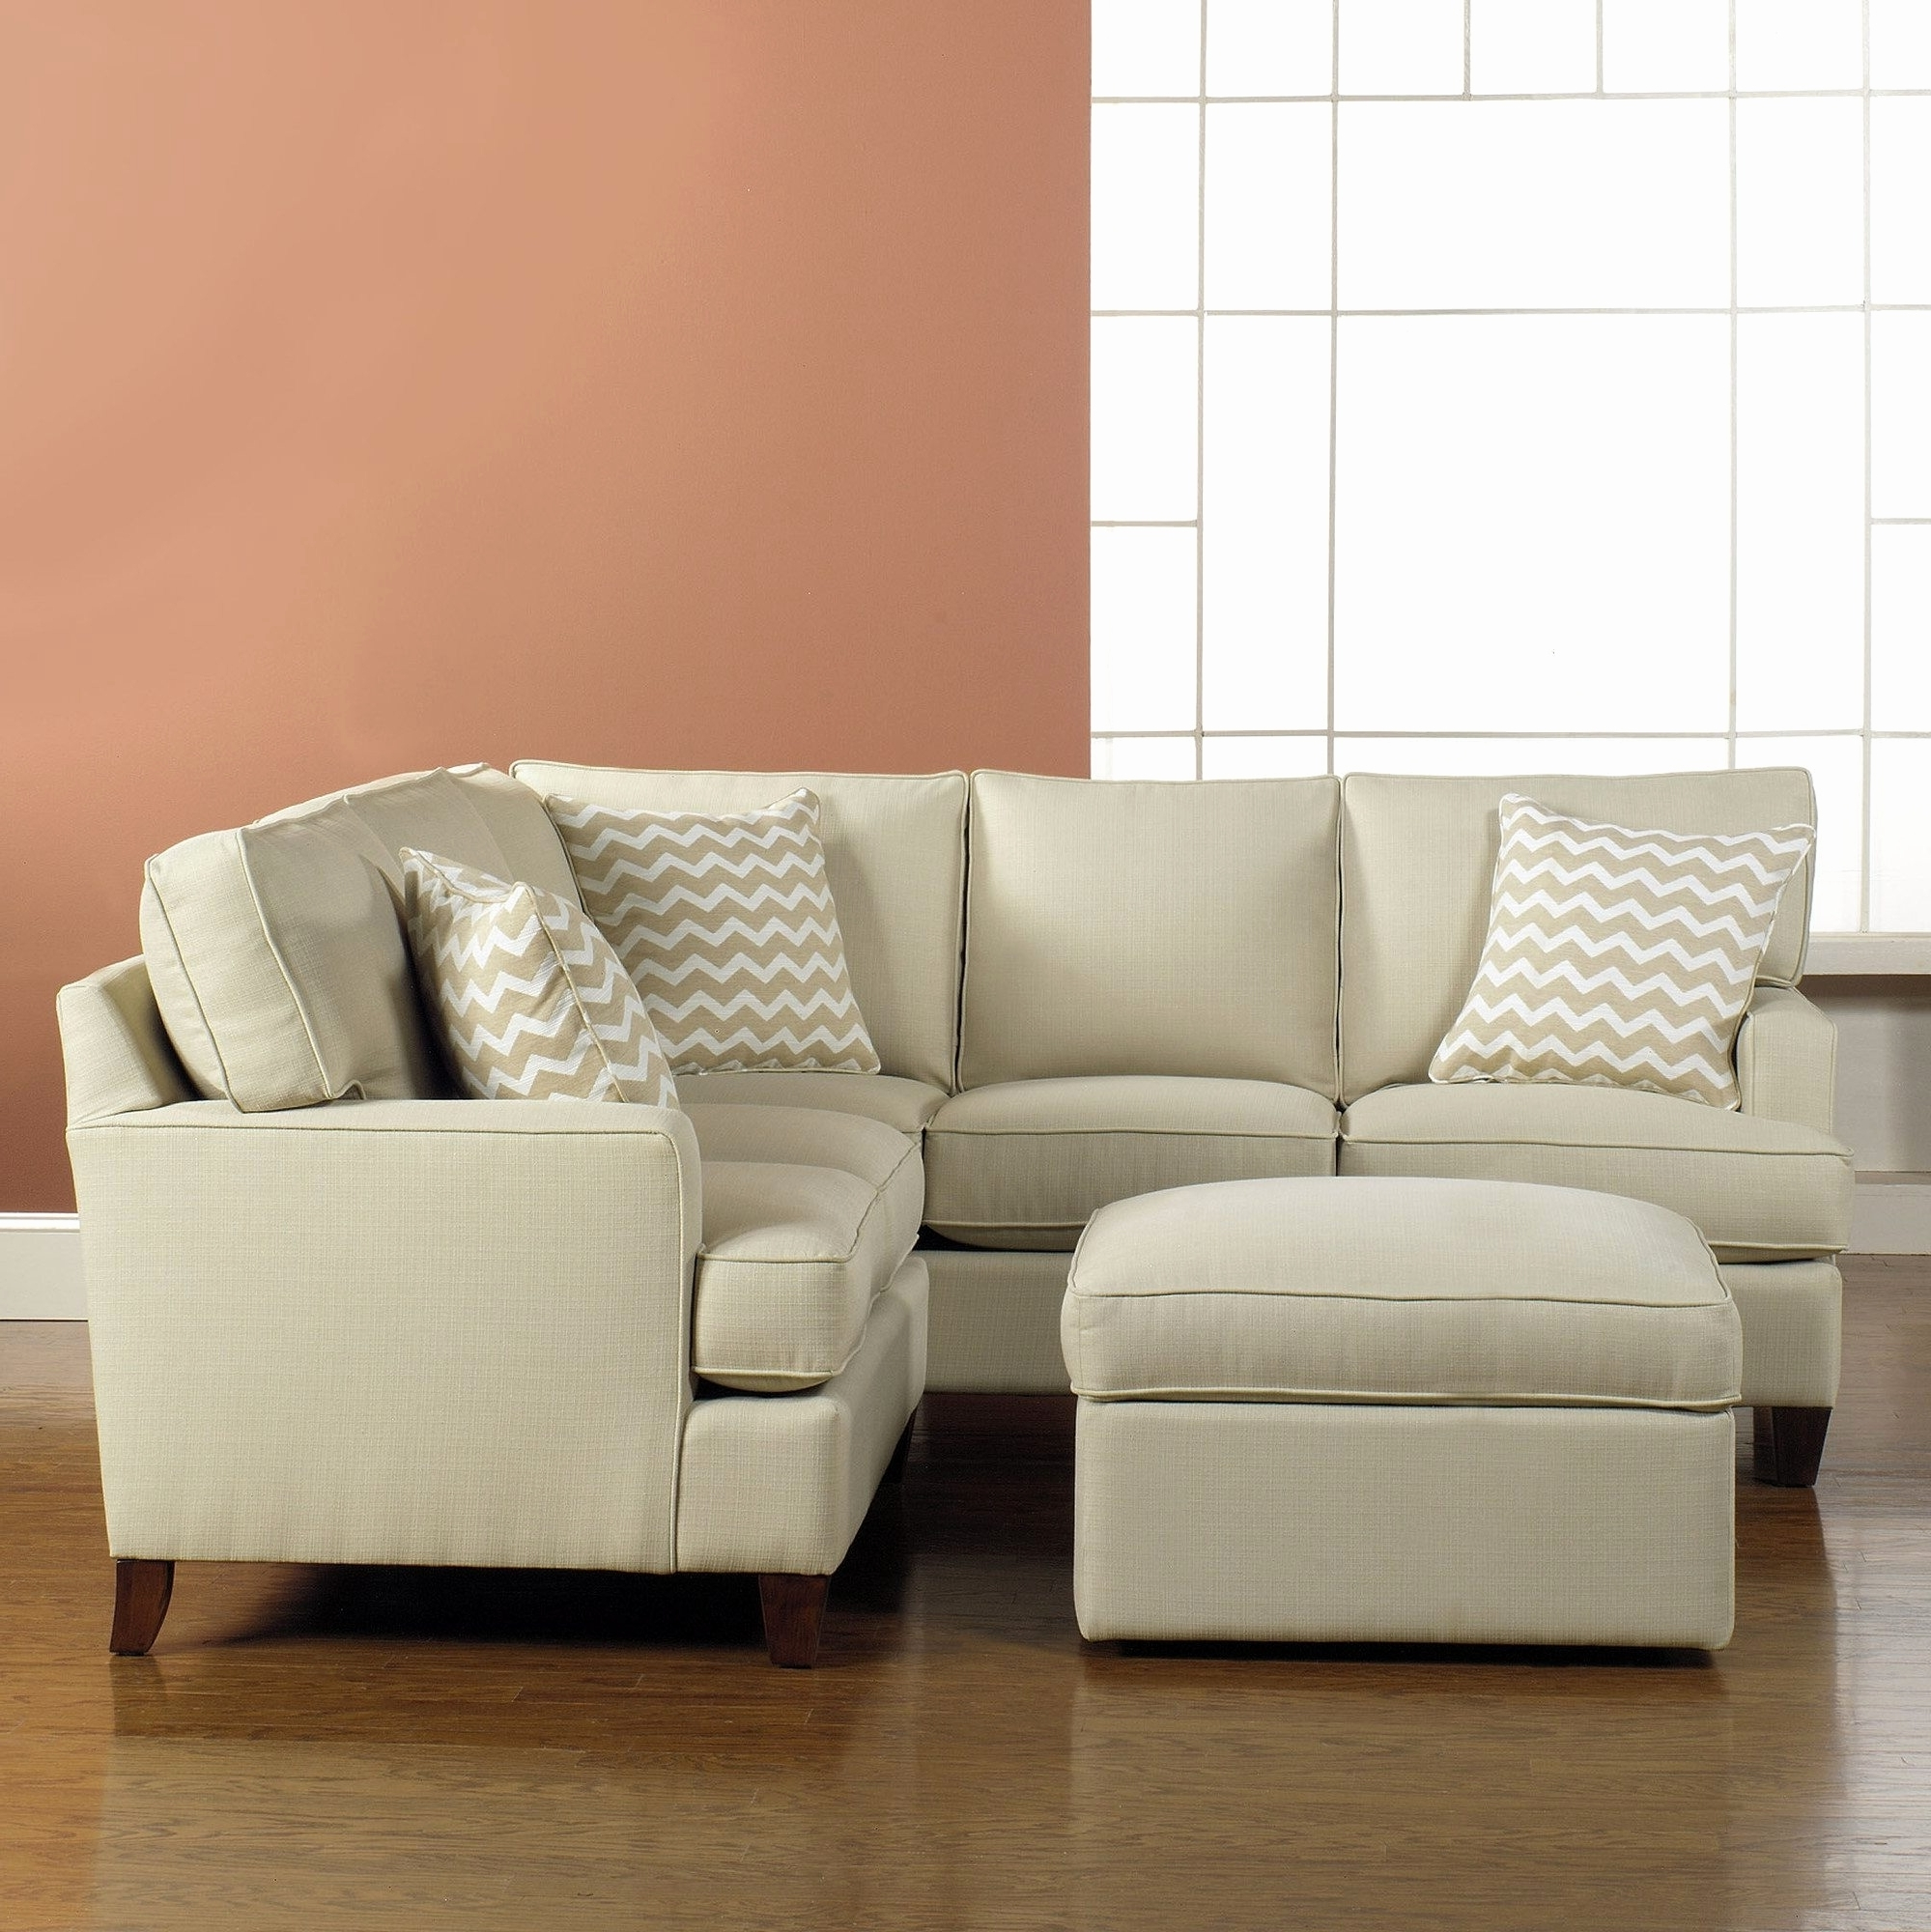 Small Space Sectional Sofa Elegant Sectional Sofa Design Awesome Pertaining To Widely Used Tiny Sofas (View 2 of 15)